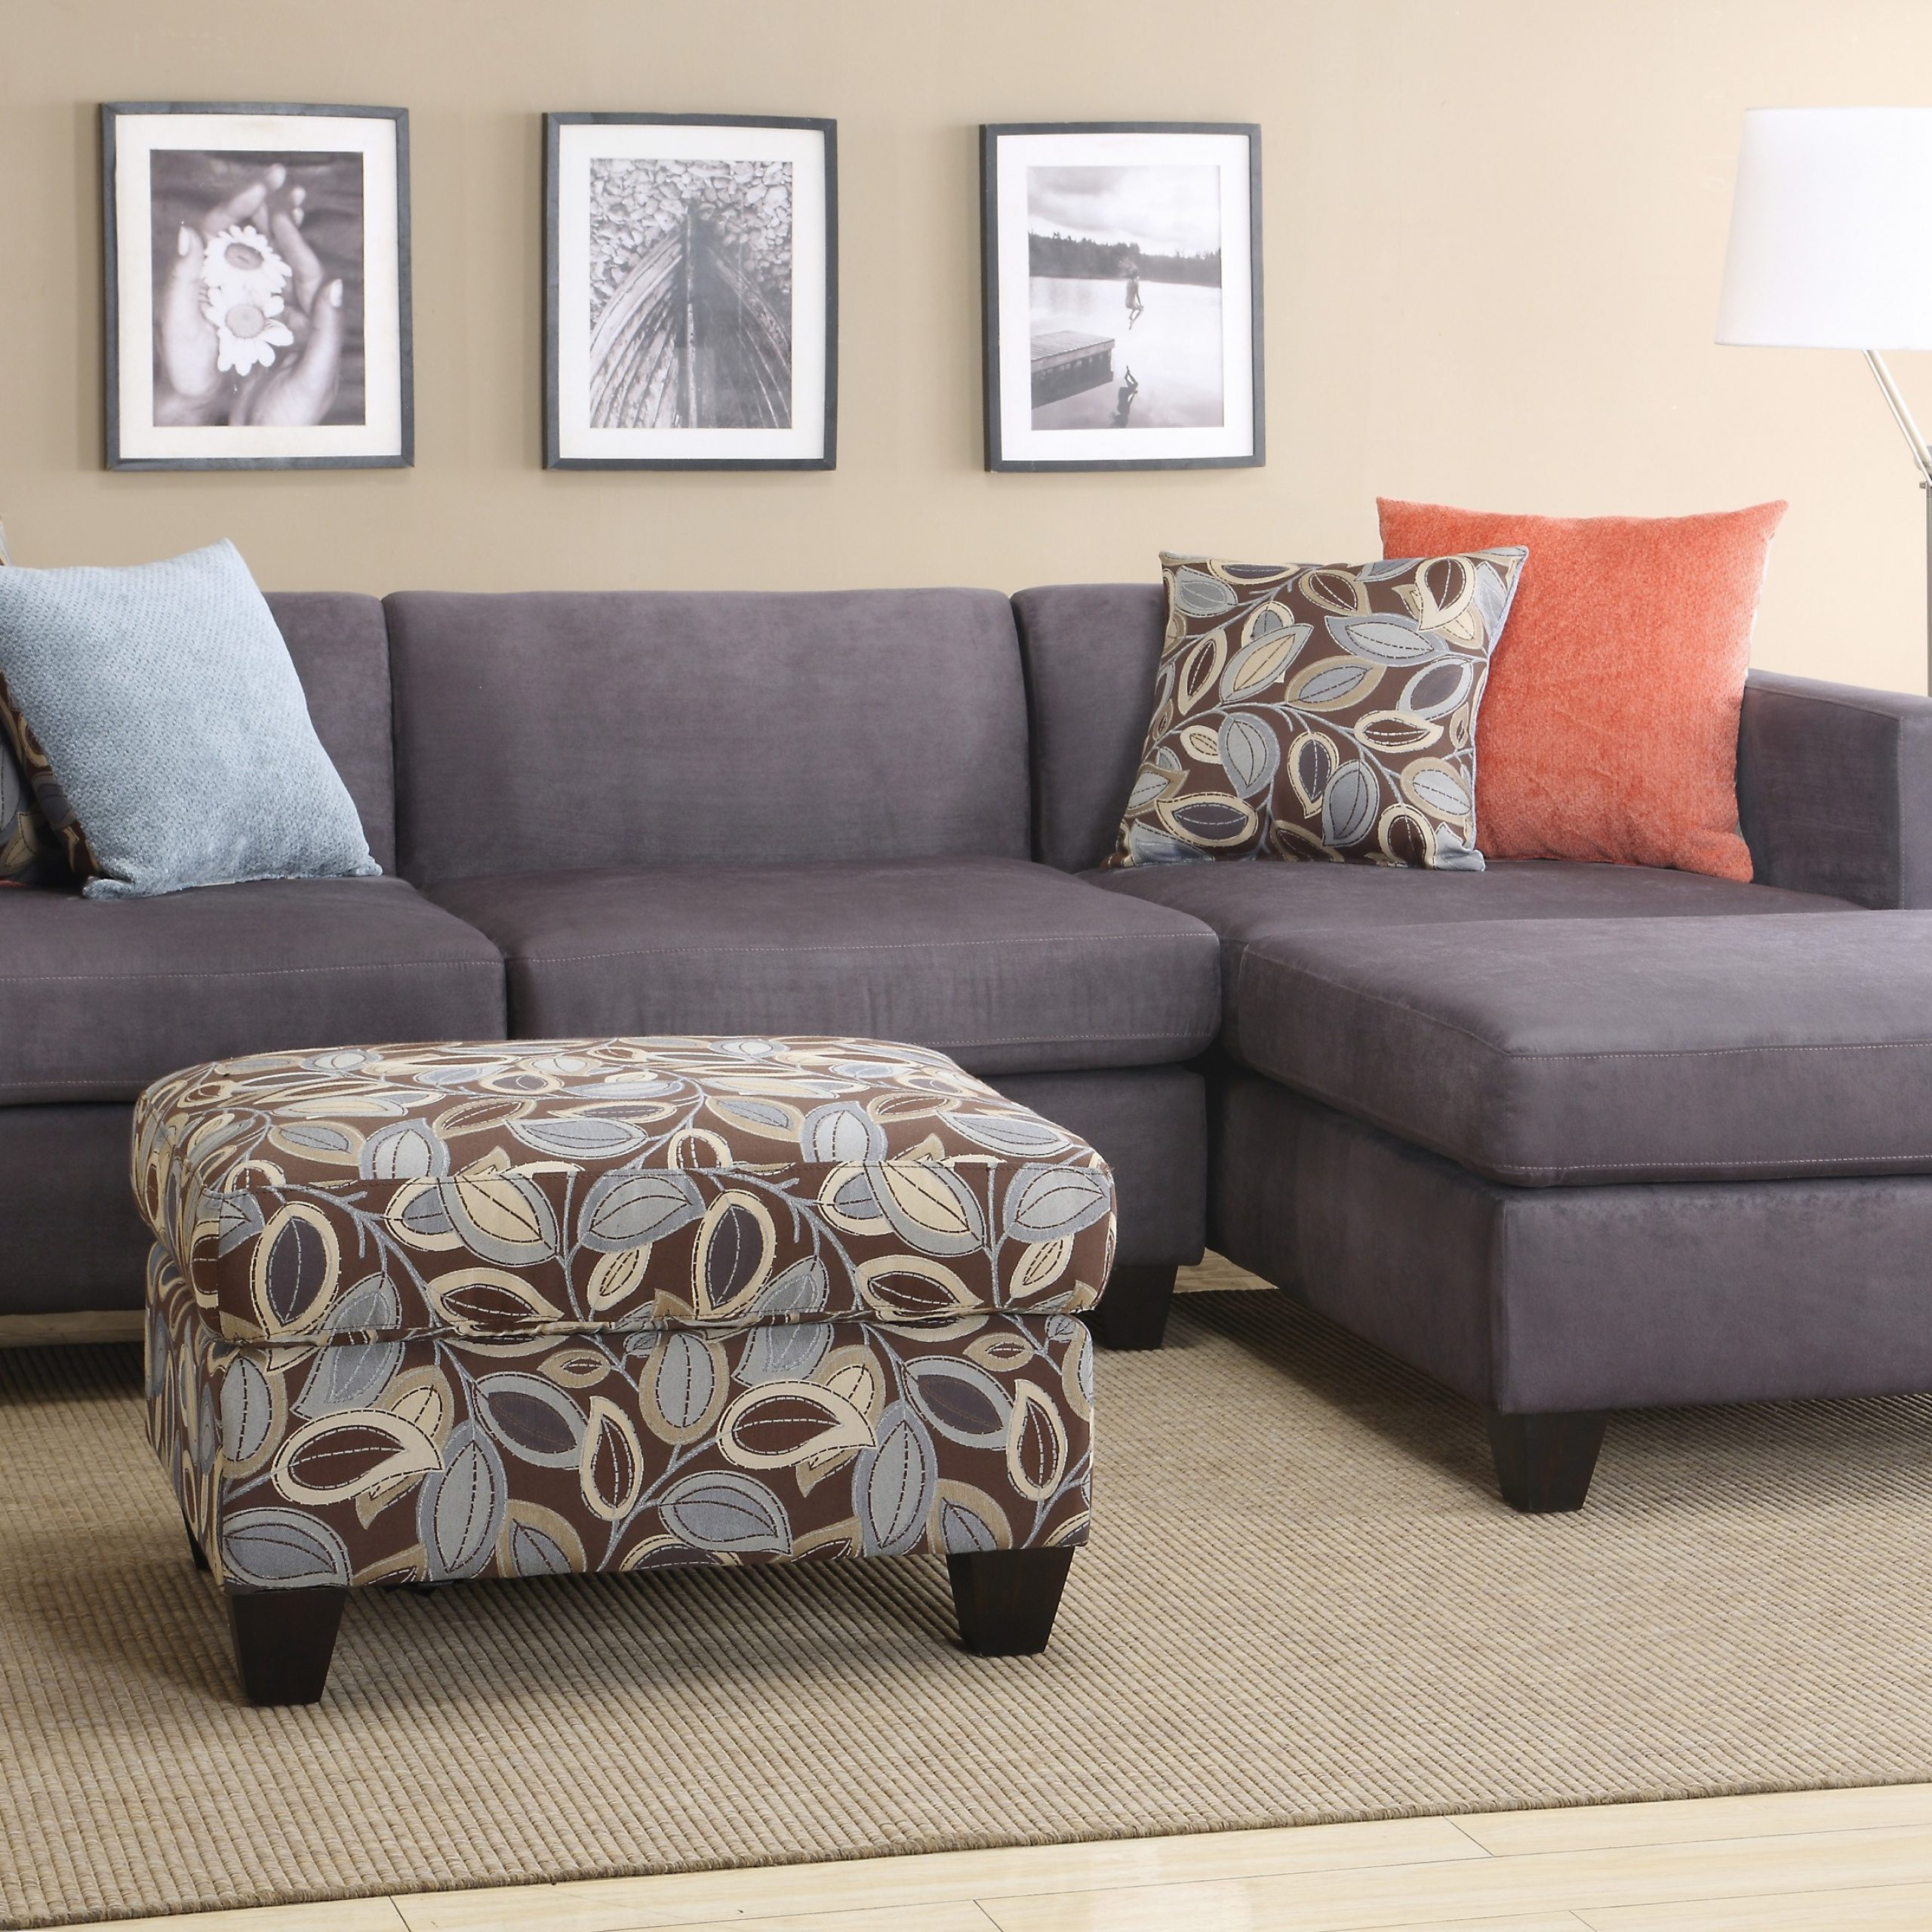 2 Piece Sectional Sofa With Chaise Design – Homesfeed Intended For Preferred 4pc Crowningshield Contemporary Chaise Sectional Sofas (View 15 of 20)